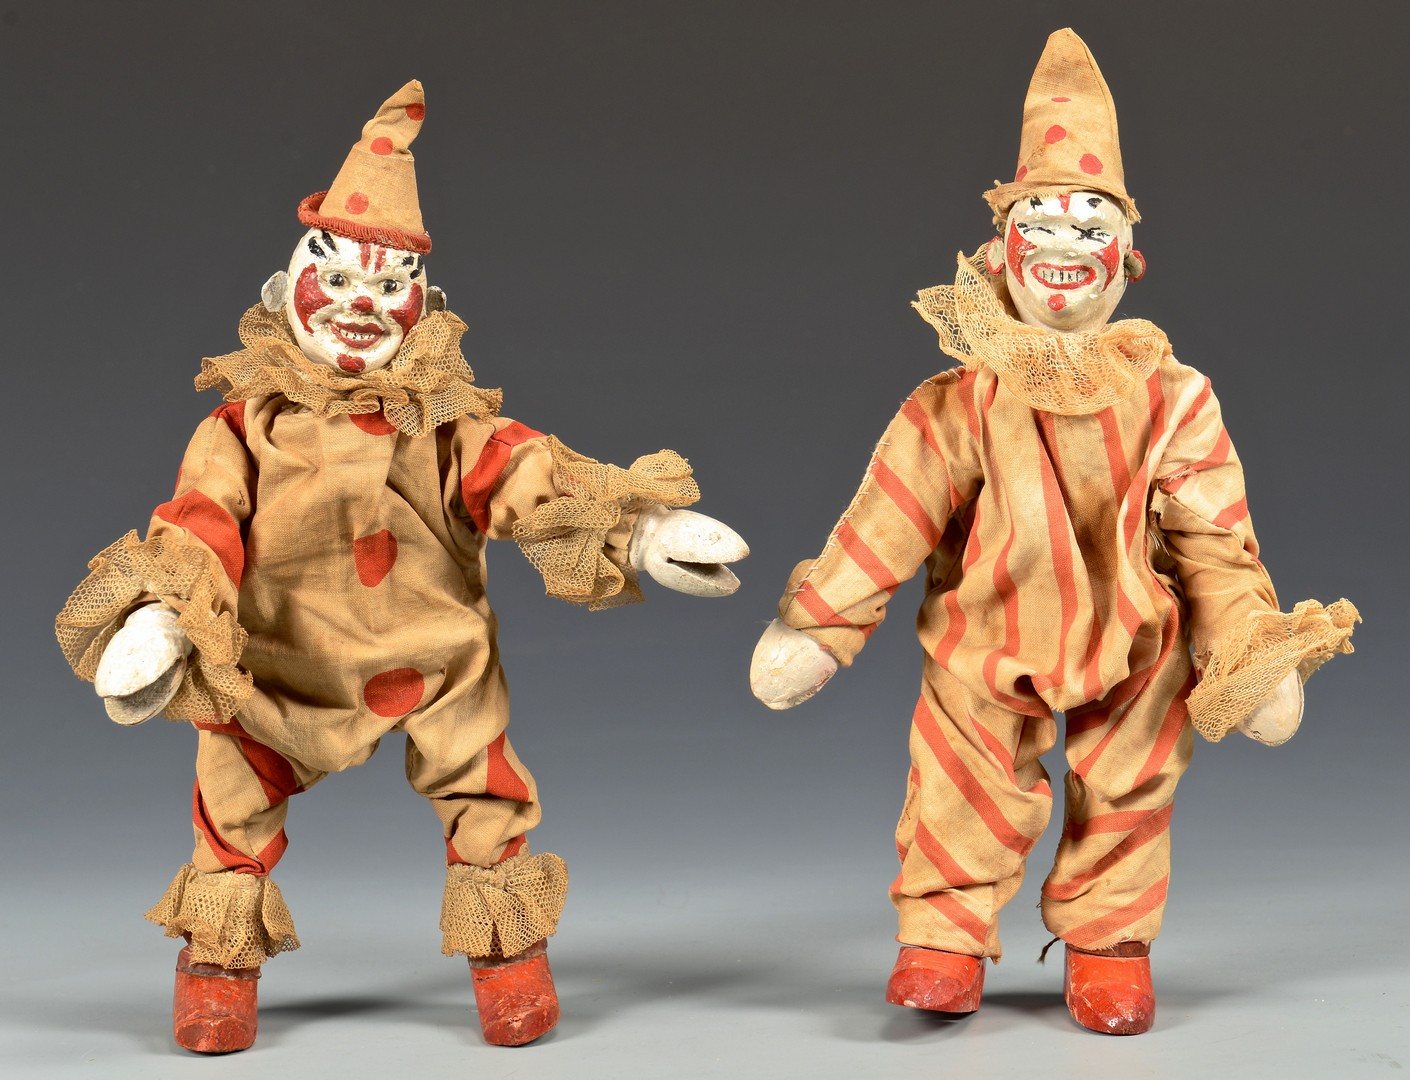 Lot 584: Group of Schoenhut Circus Figures & Animals, 9 pcs.